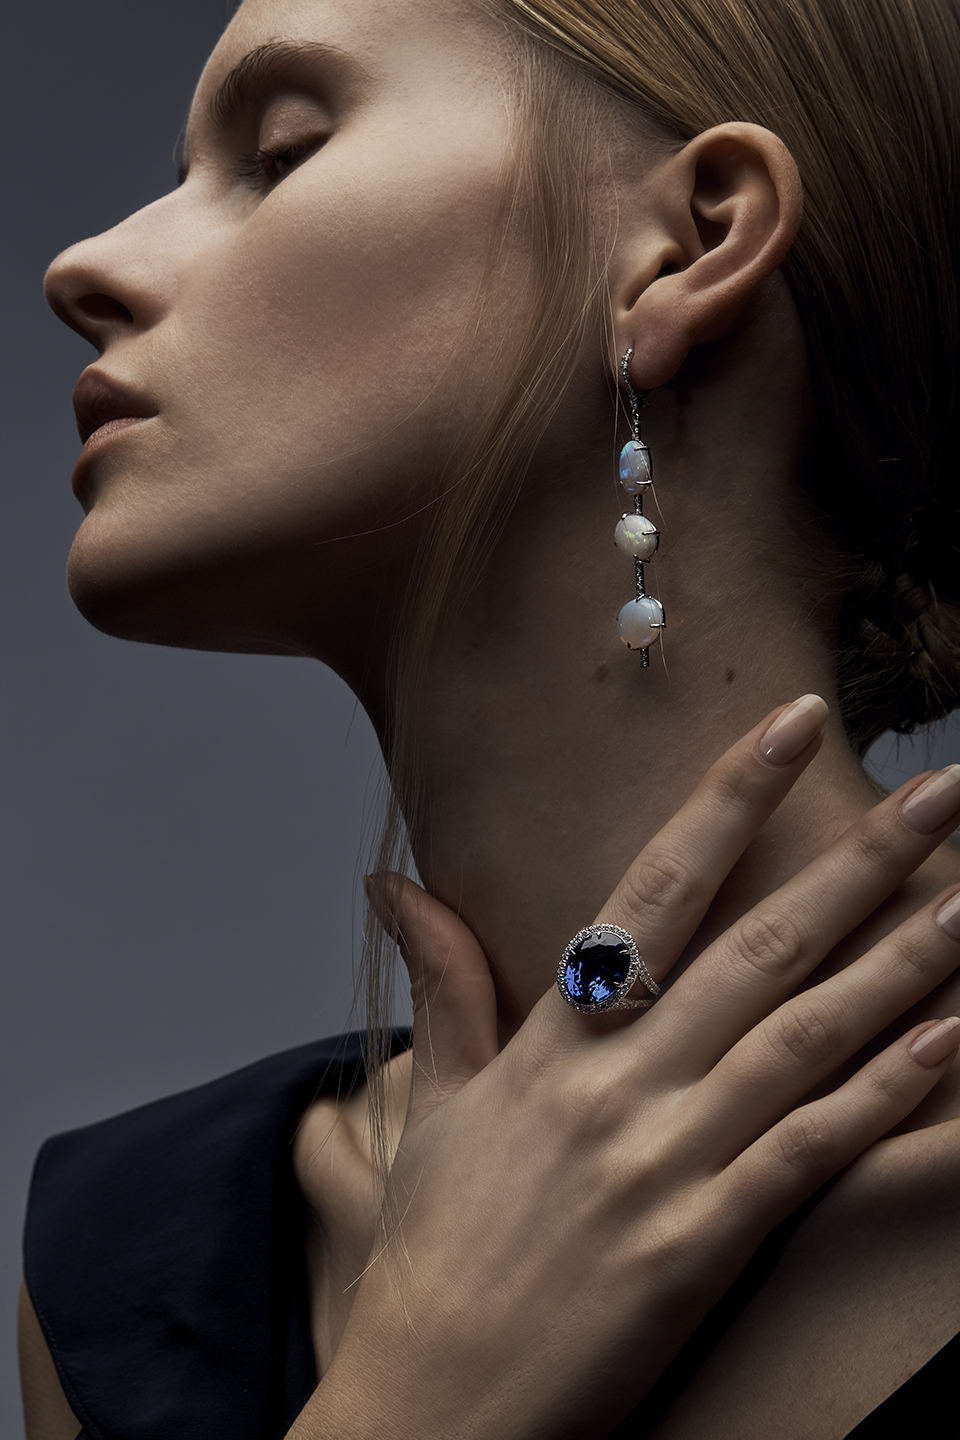 CLO EARRINGS   18 K GOLD .52 CT OF DIAMONDS  10.16 CT OF OPALS     SARA RINGS   1.20 CT OF DIAMONDS  10.57 CT OF TANZANITE